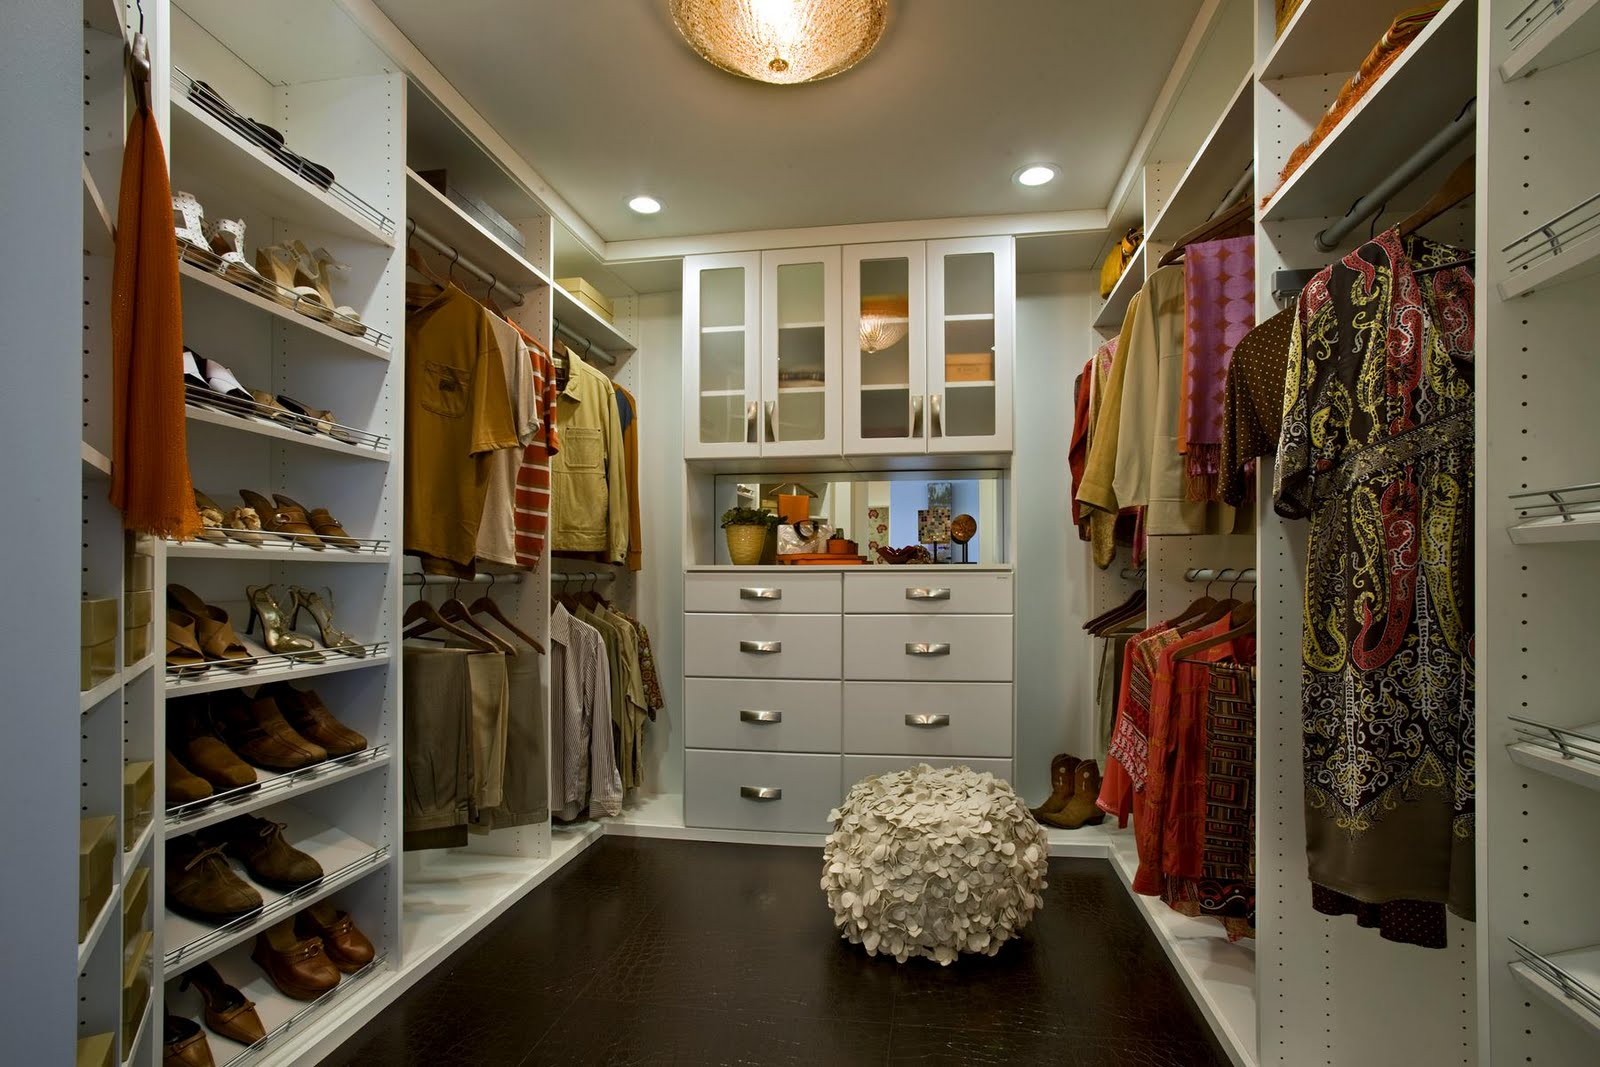 17 elegant and trendy bedroom closet desingns home decorating ideas - Decoratie dressing ...